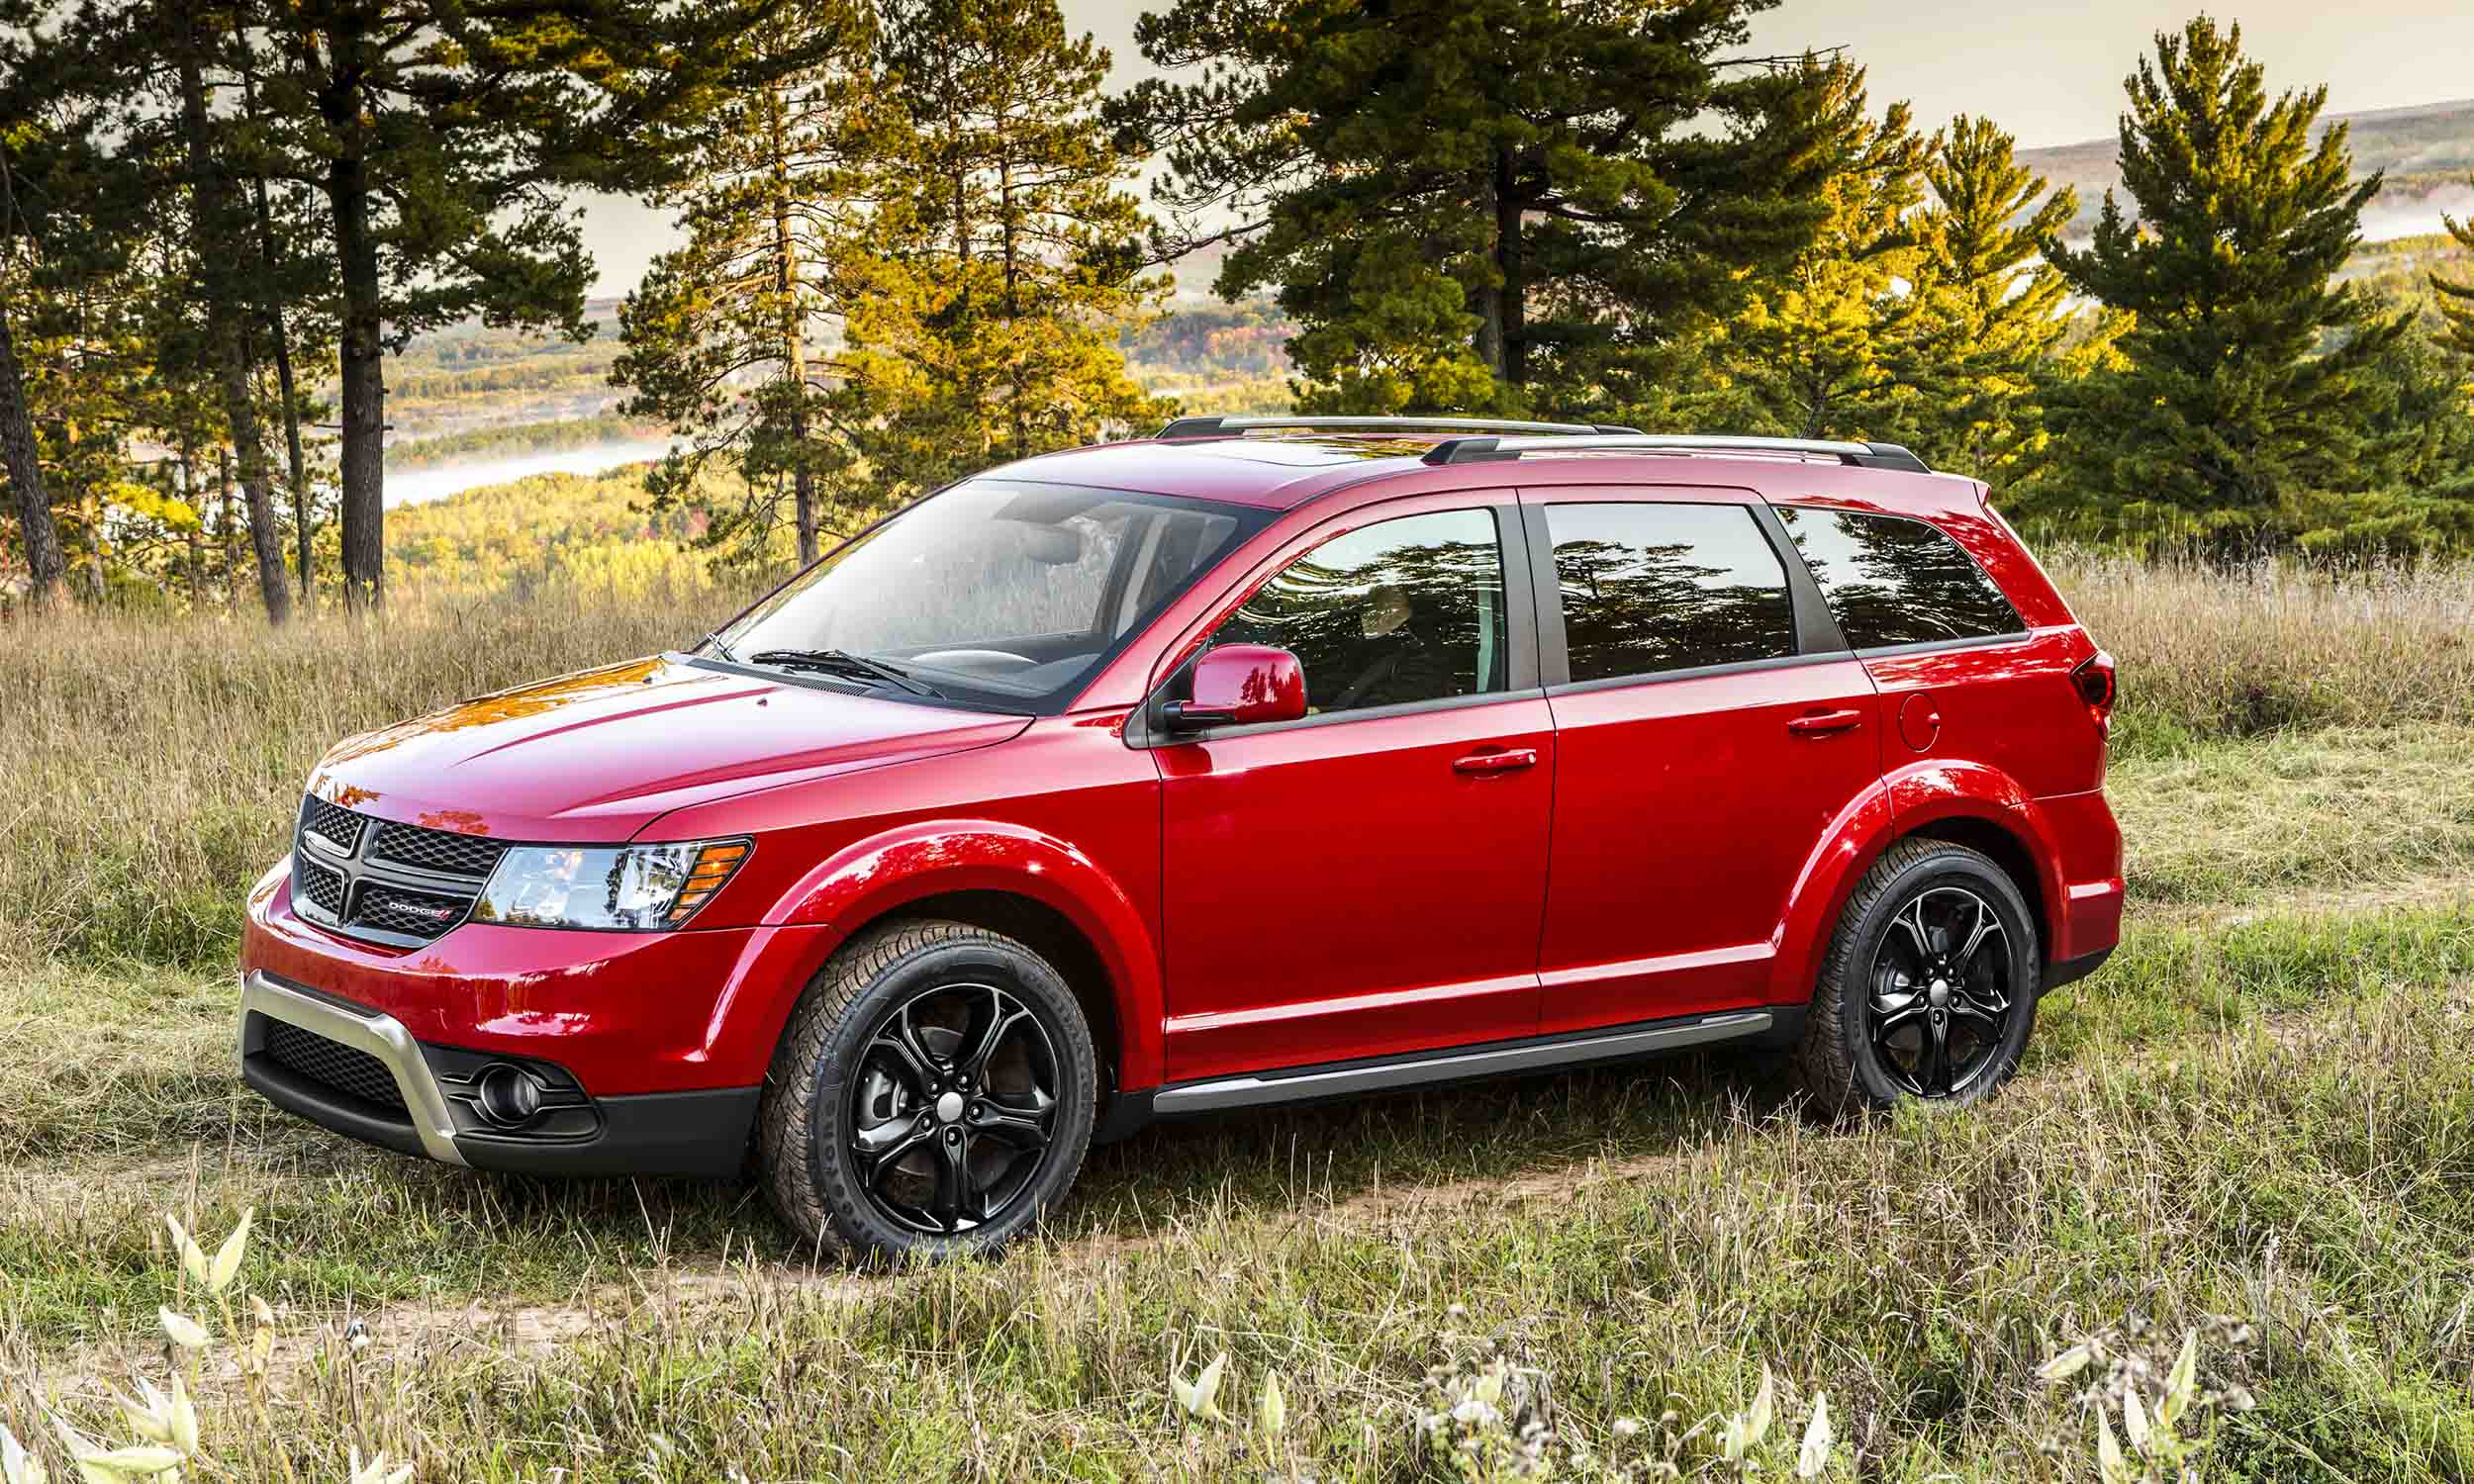 Latest Automotive Safety Recalls Autonxt Power Steering Pump Additionally 2007 Grand Caravan Issue Chrysler Fca Us Llc Is Recalling Certain 2018 Dodge Journey Vehicles When Reverse Gear Has Been Selected